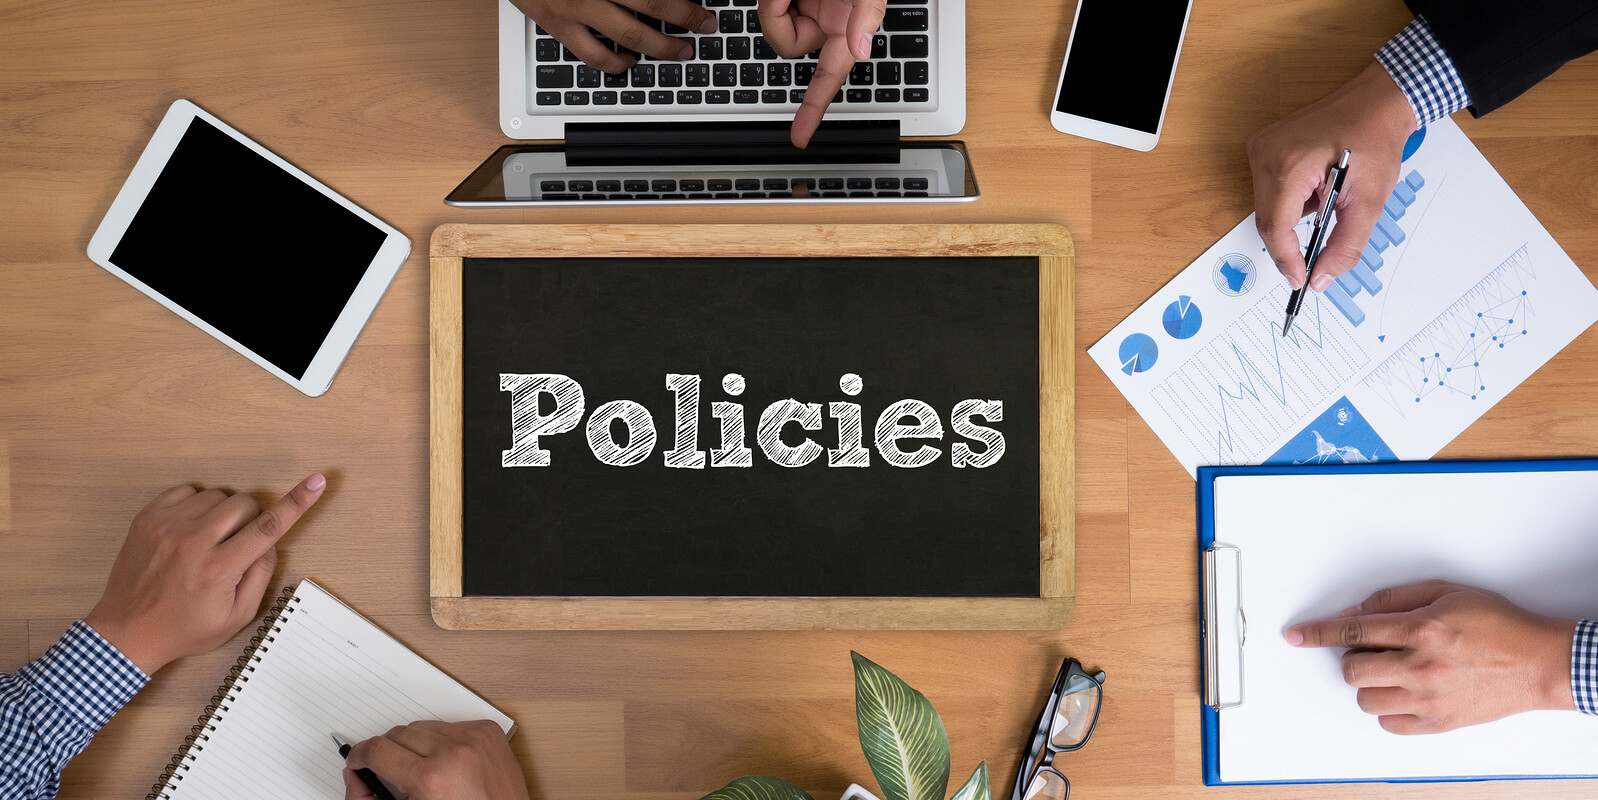 10 corporate policies to end in the new year